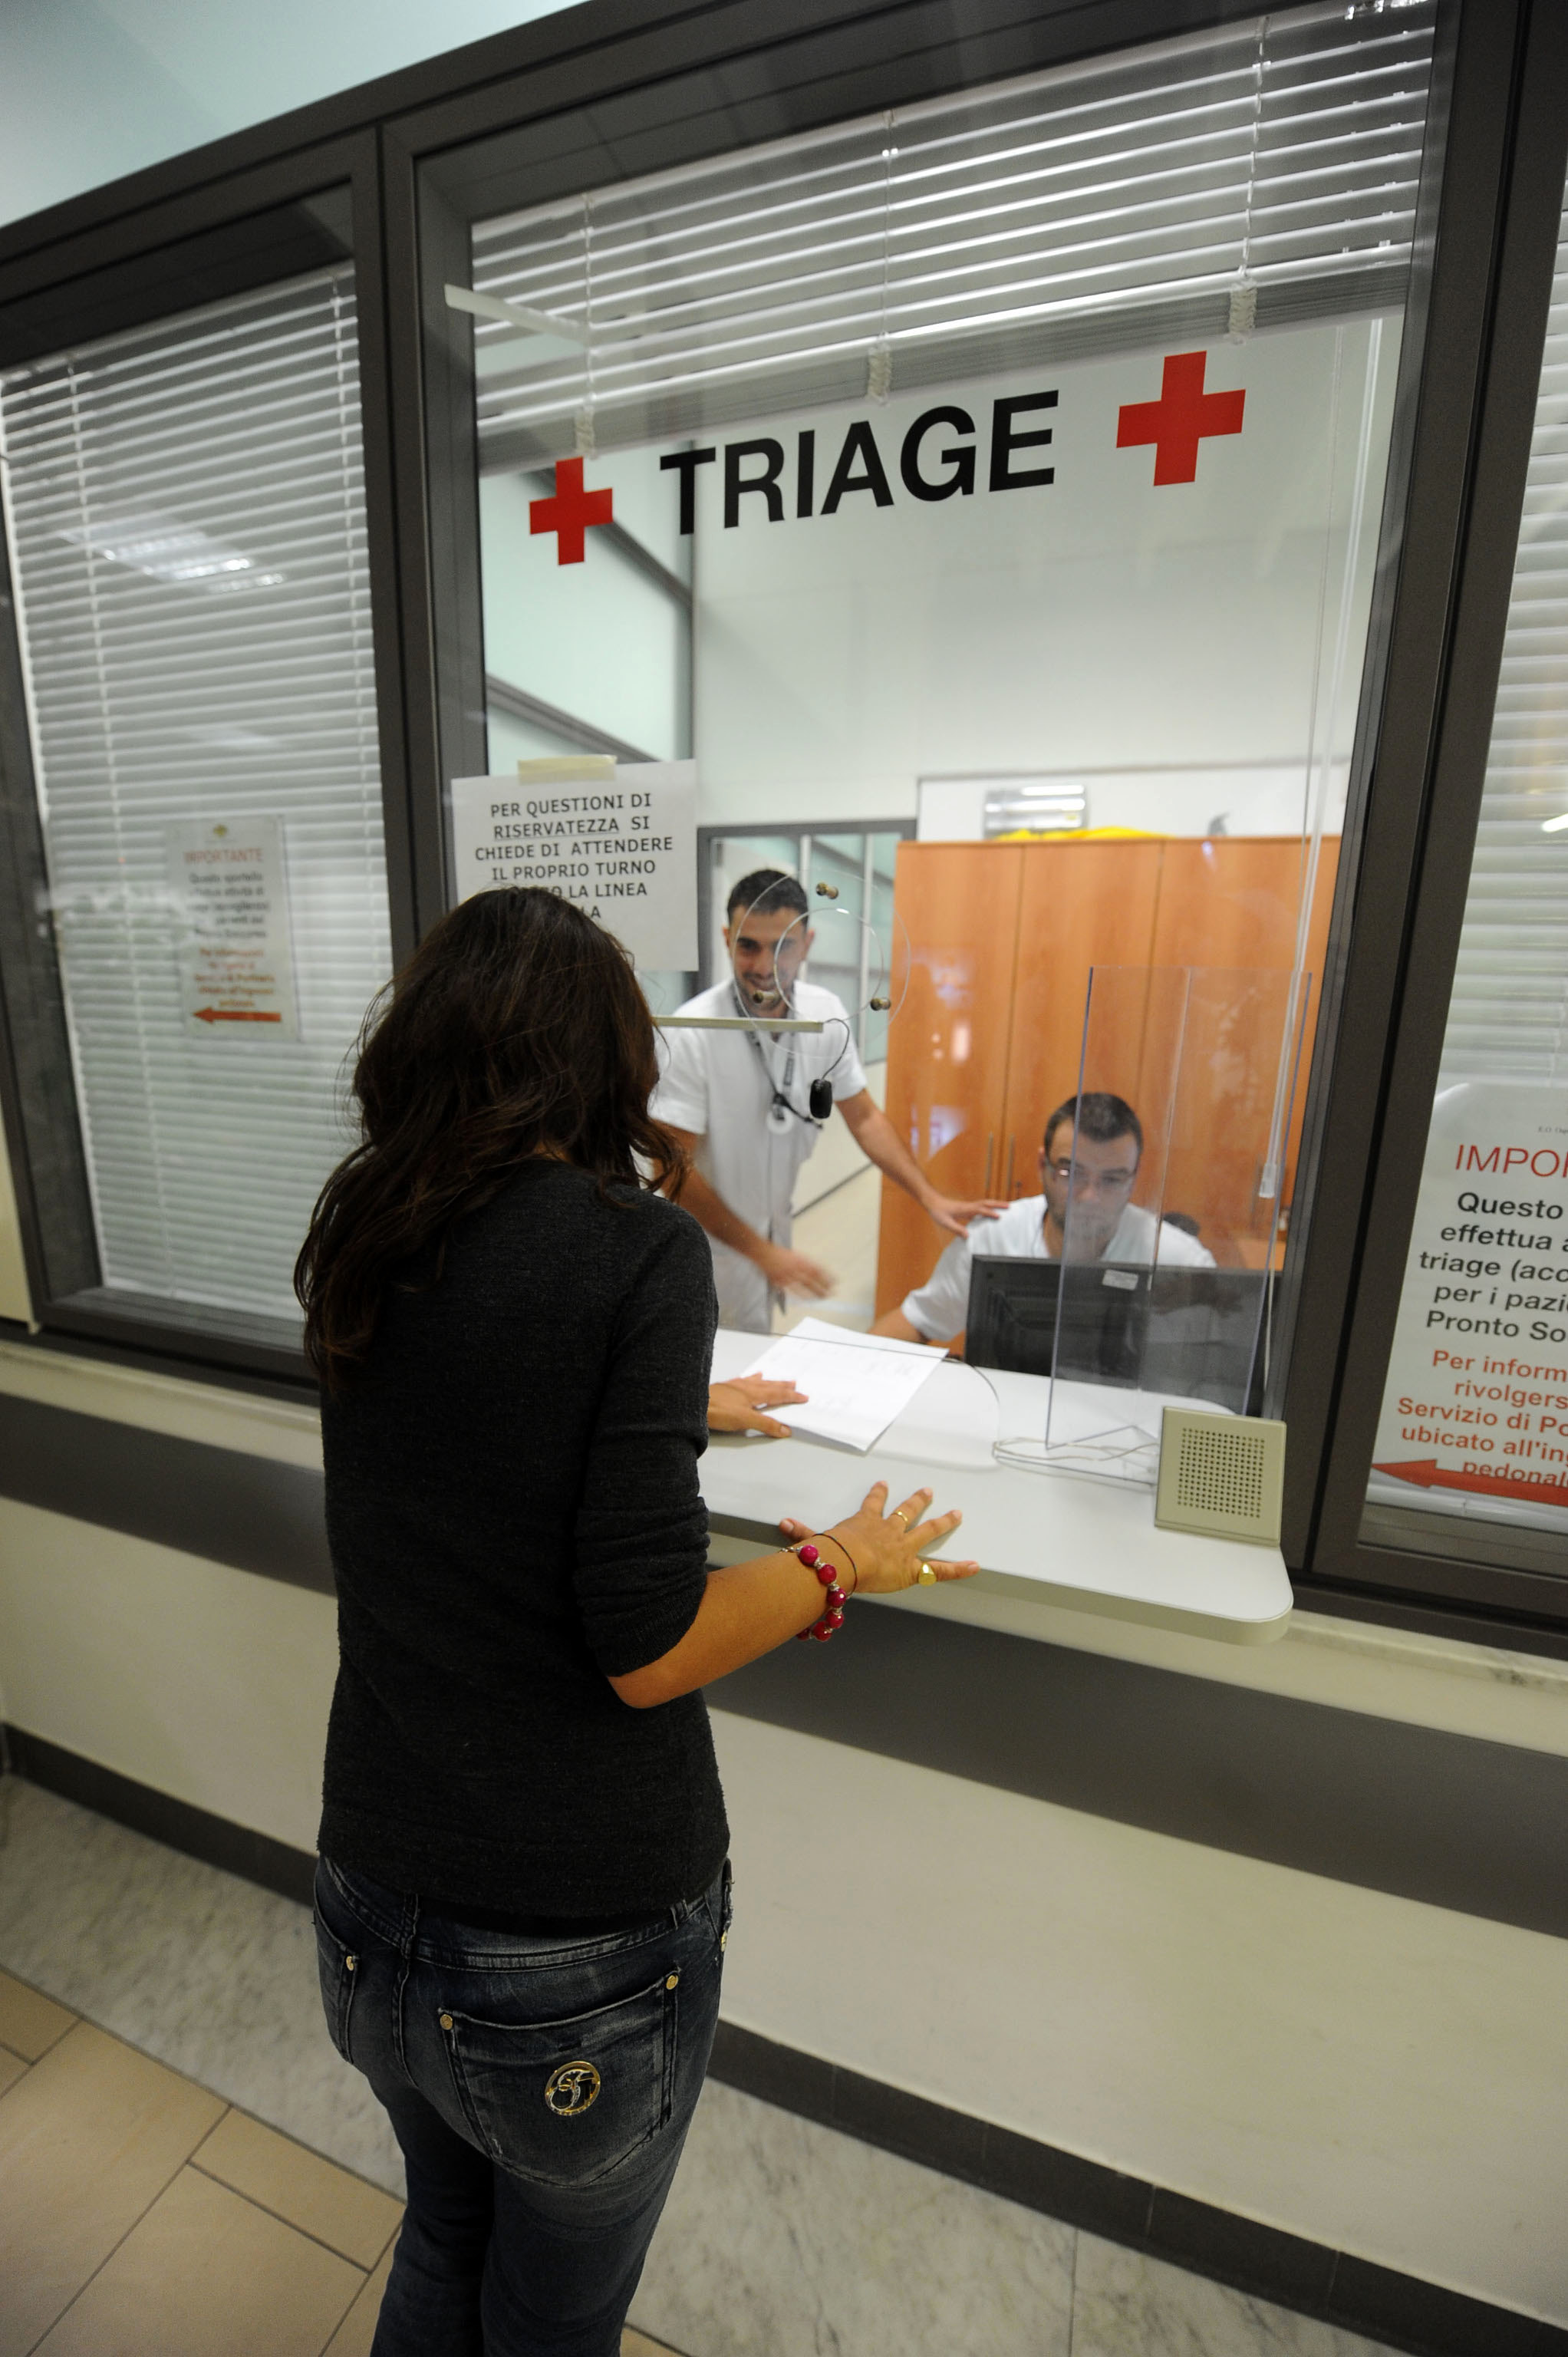 pronto soccorso triage ansa-2